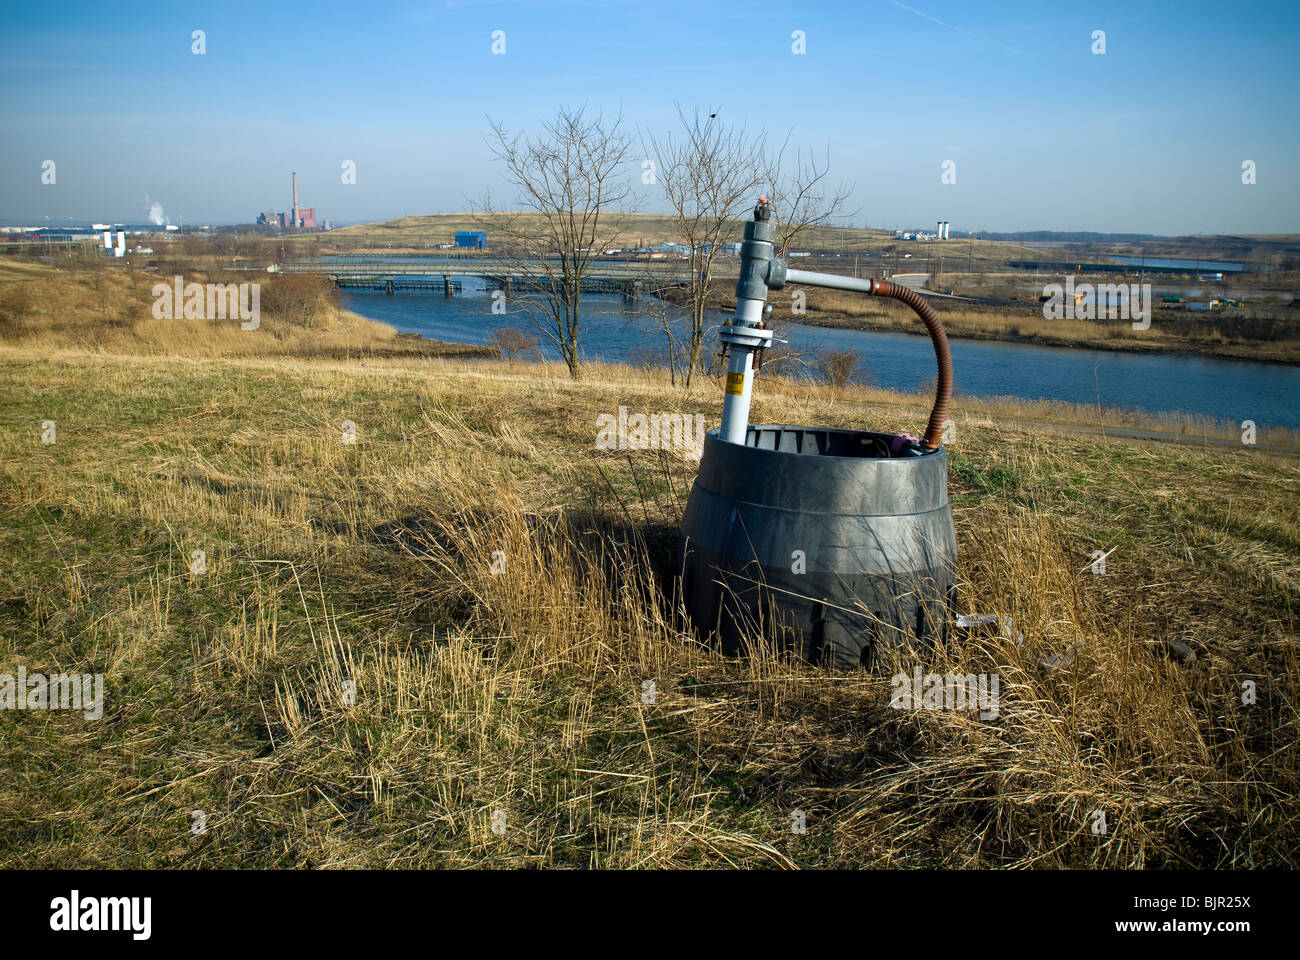 An active methane gas collection wellhead seen on South Mound in the Fresh Kills landfill in Staten Island in New - Stock Image